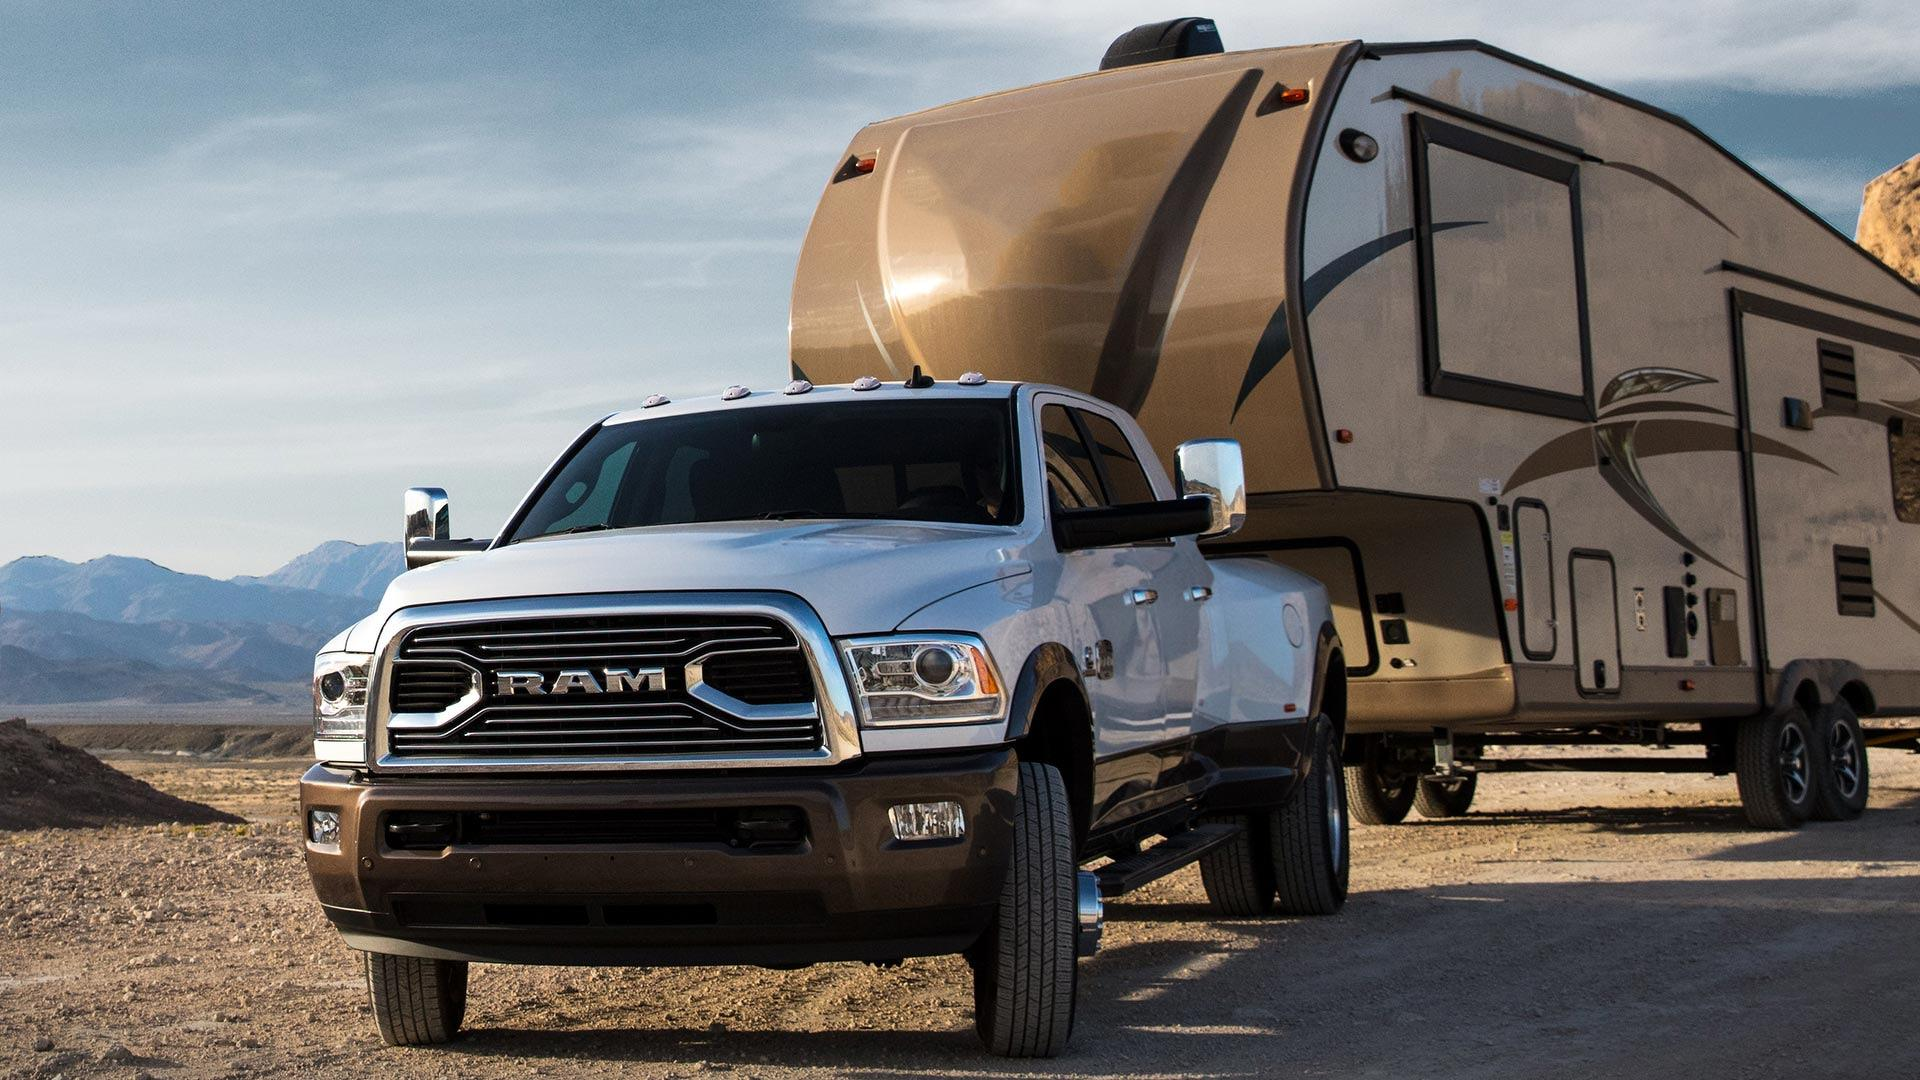 Ram 3500 HD can tow up to 30000 lbs